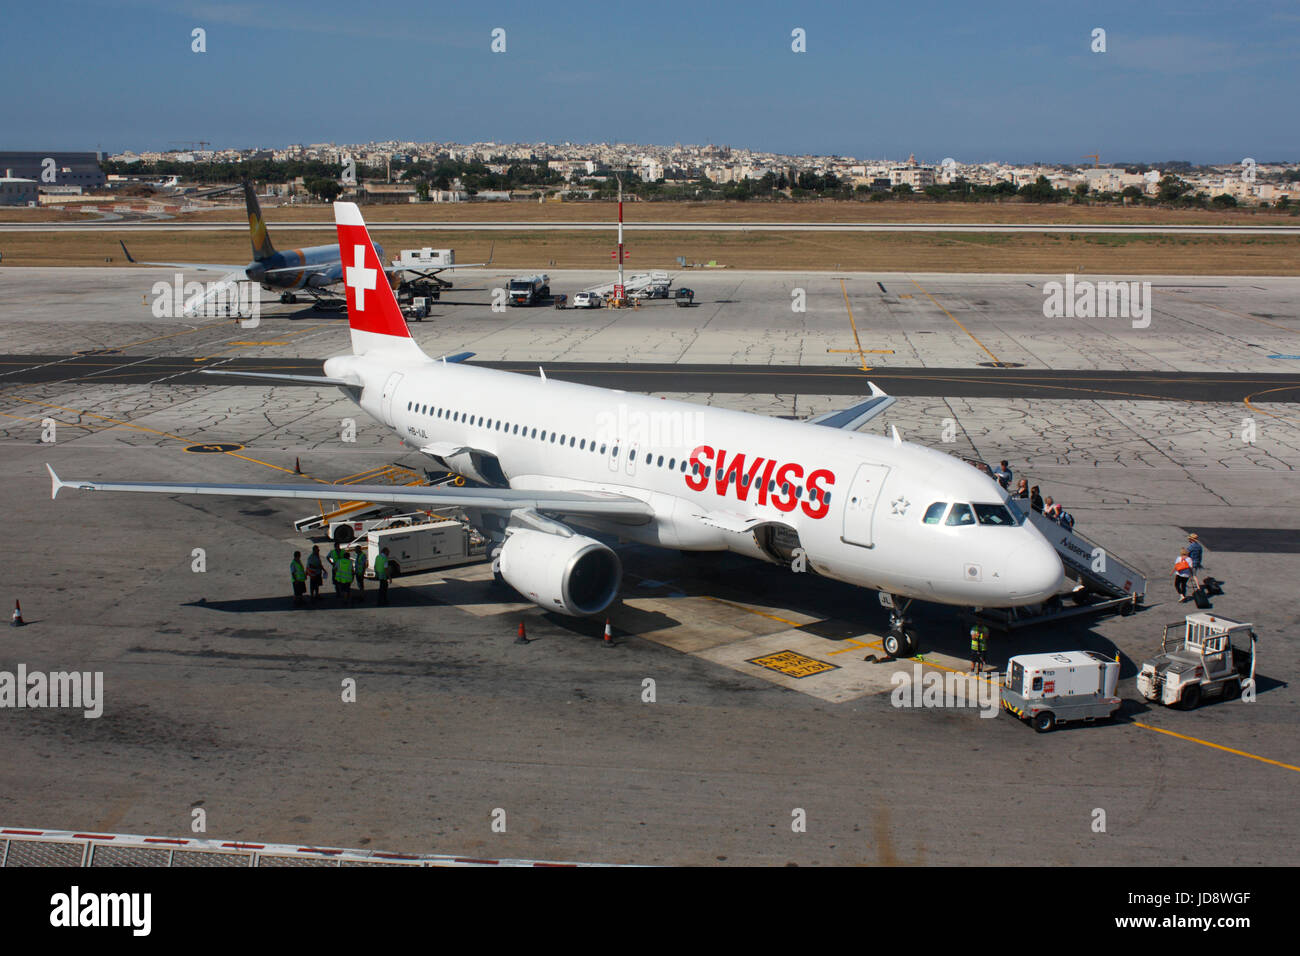 Commercial air travel in Europe. Passengers boarding a Swiss International Air Lines Airbus A320 jet plane on the - Stock Image